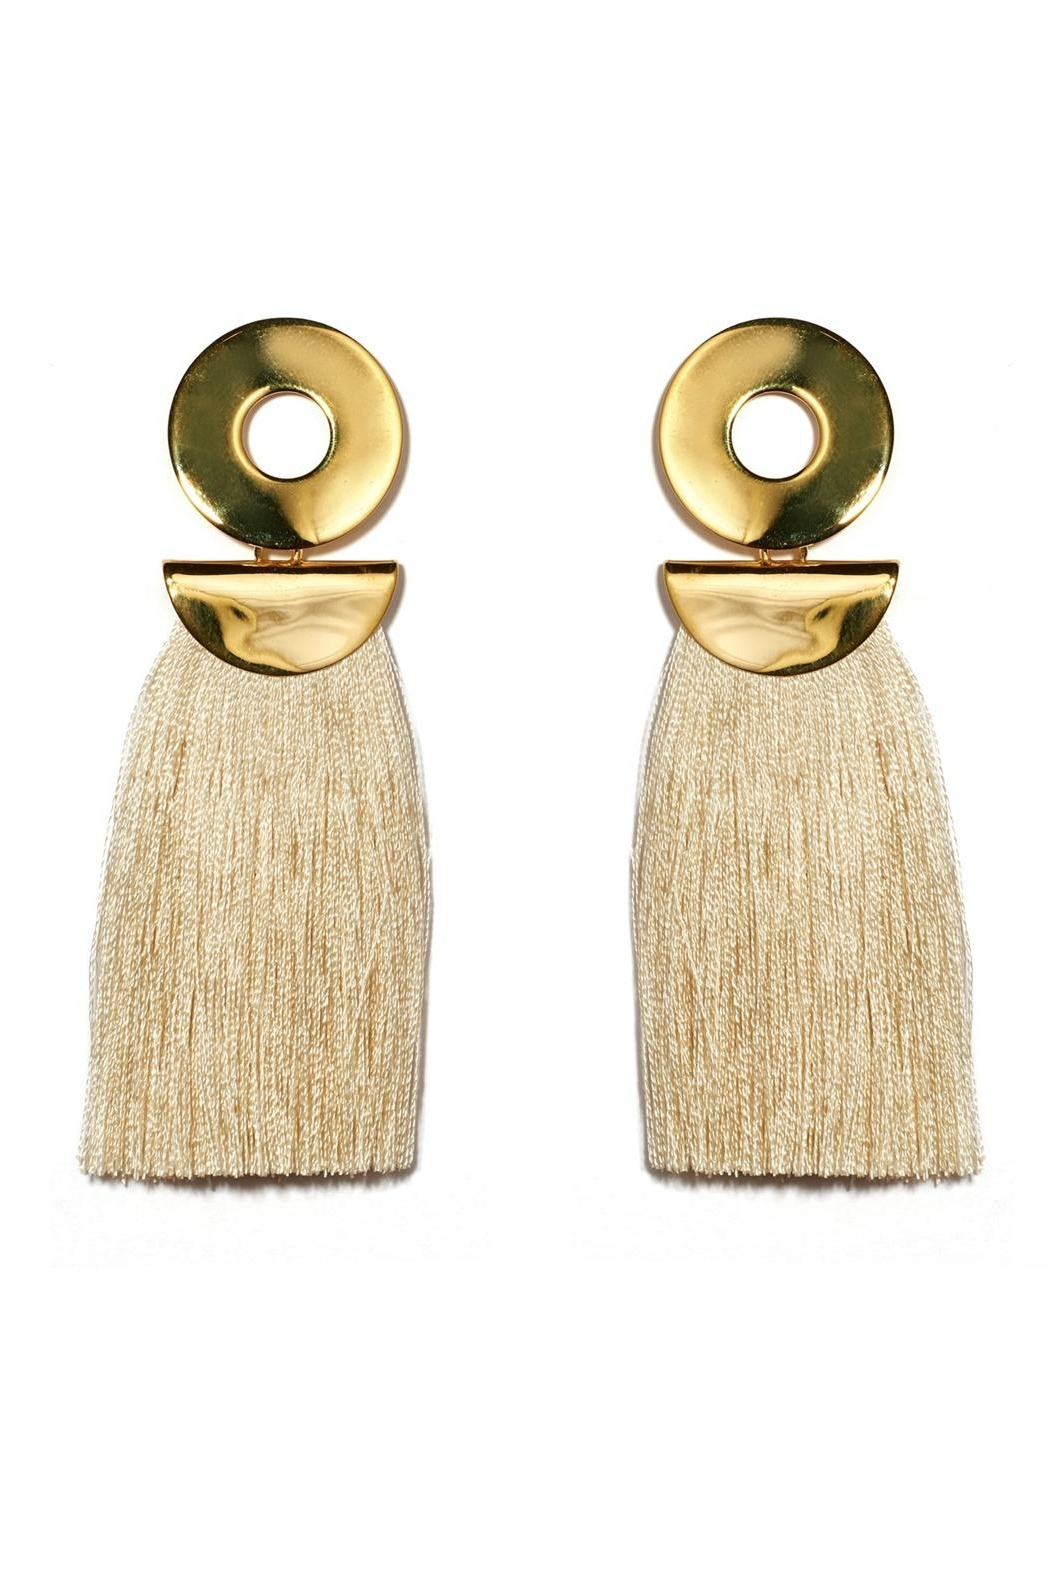 Lizzie Fortunato Go-Go Crater Earrings - Main Image